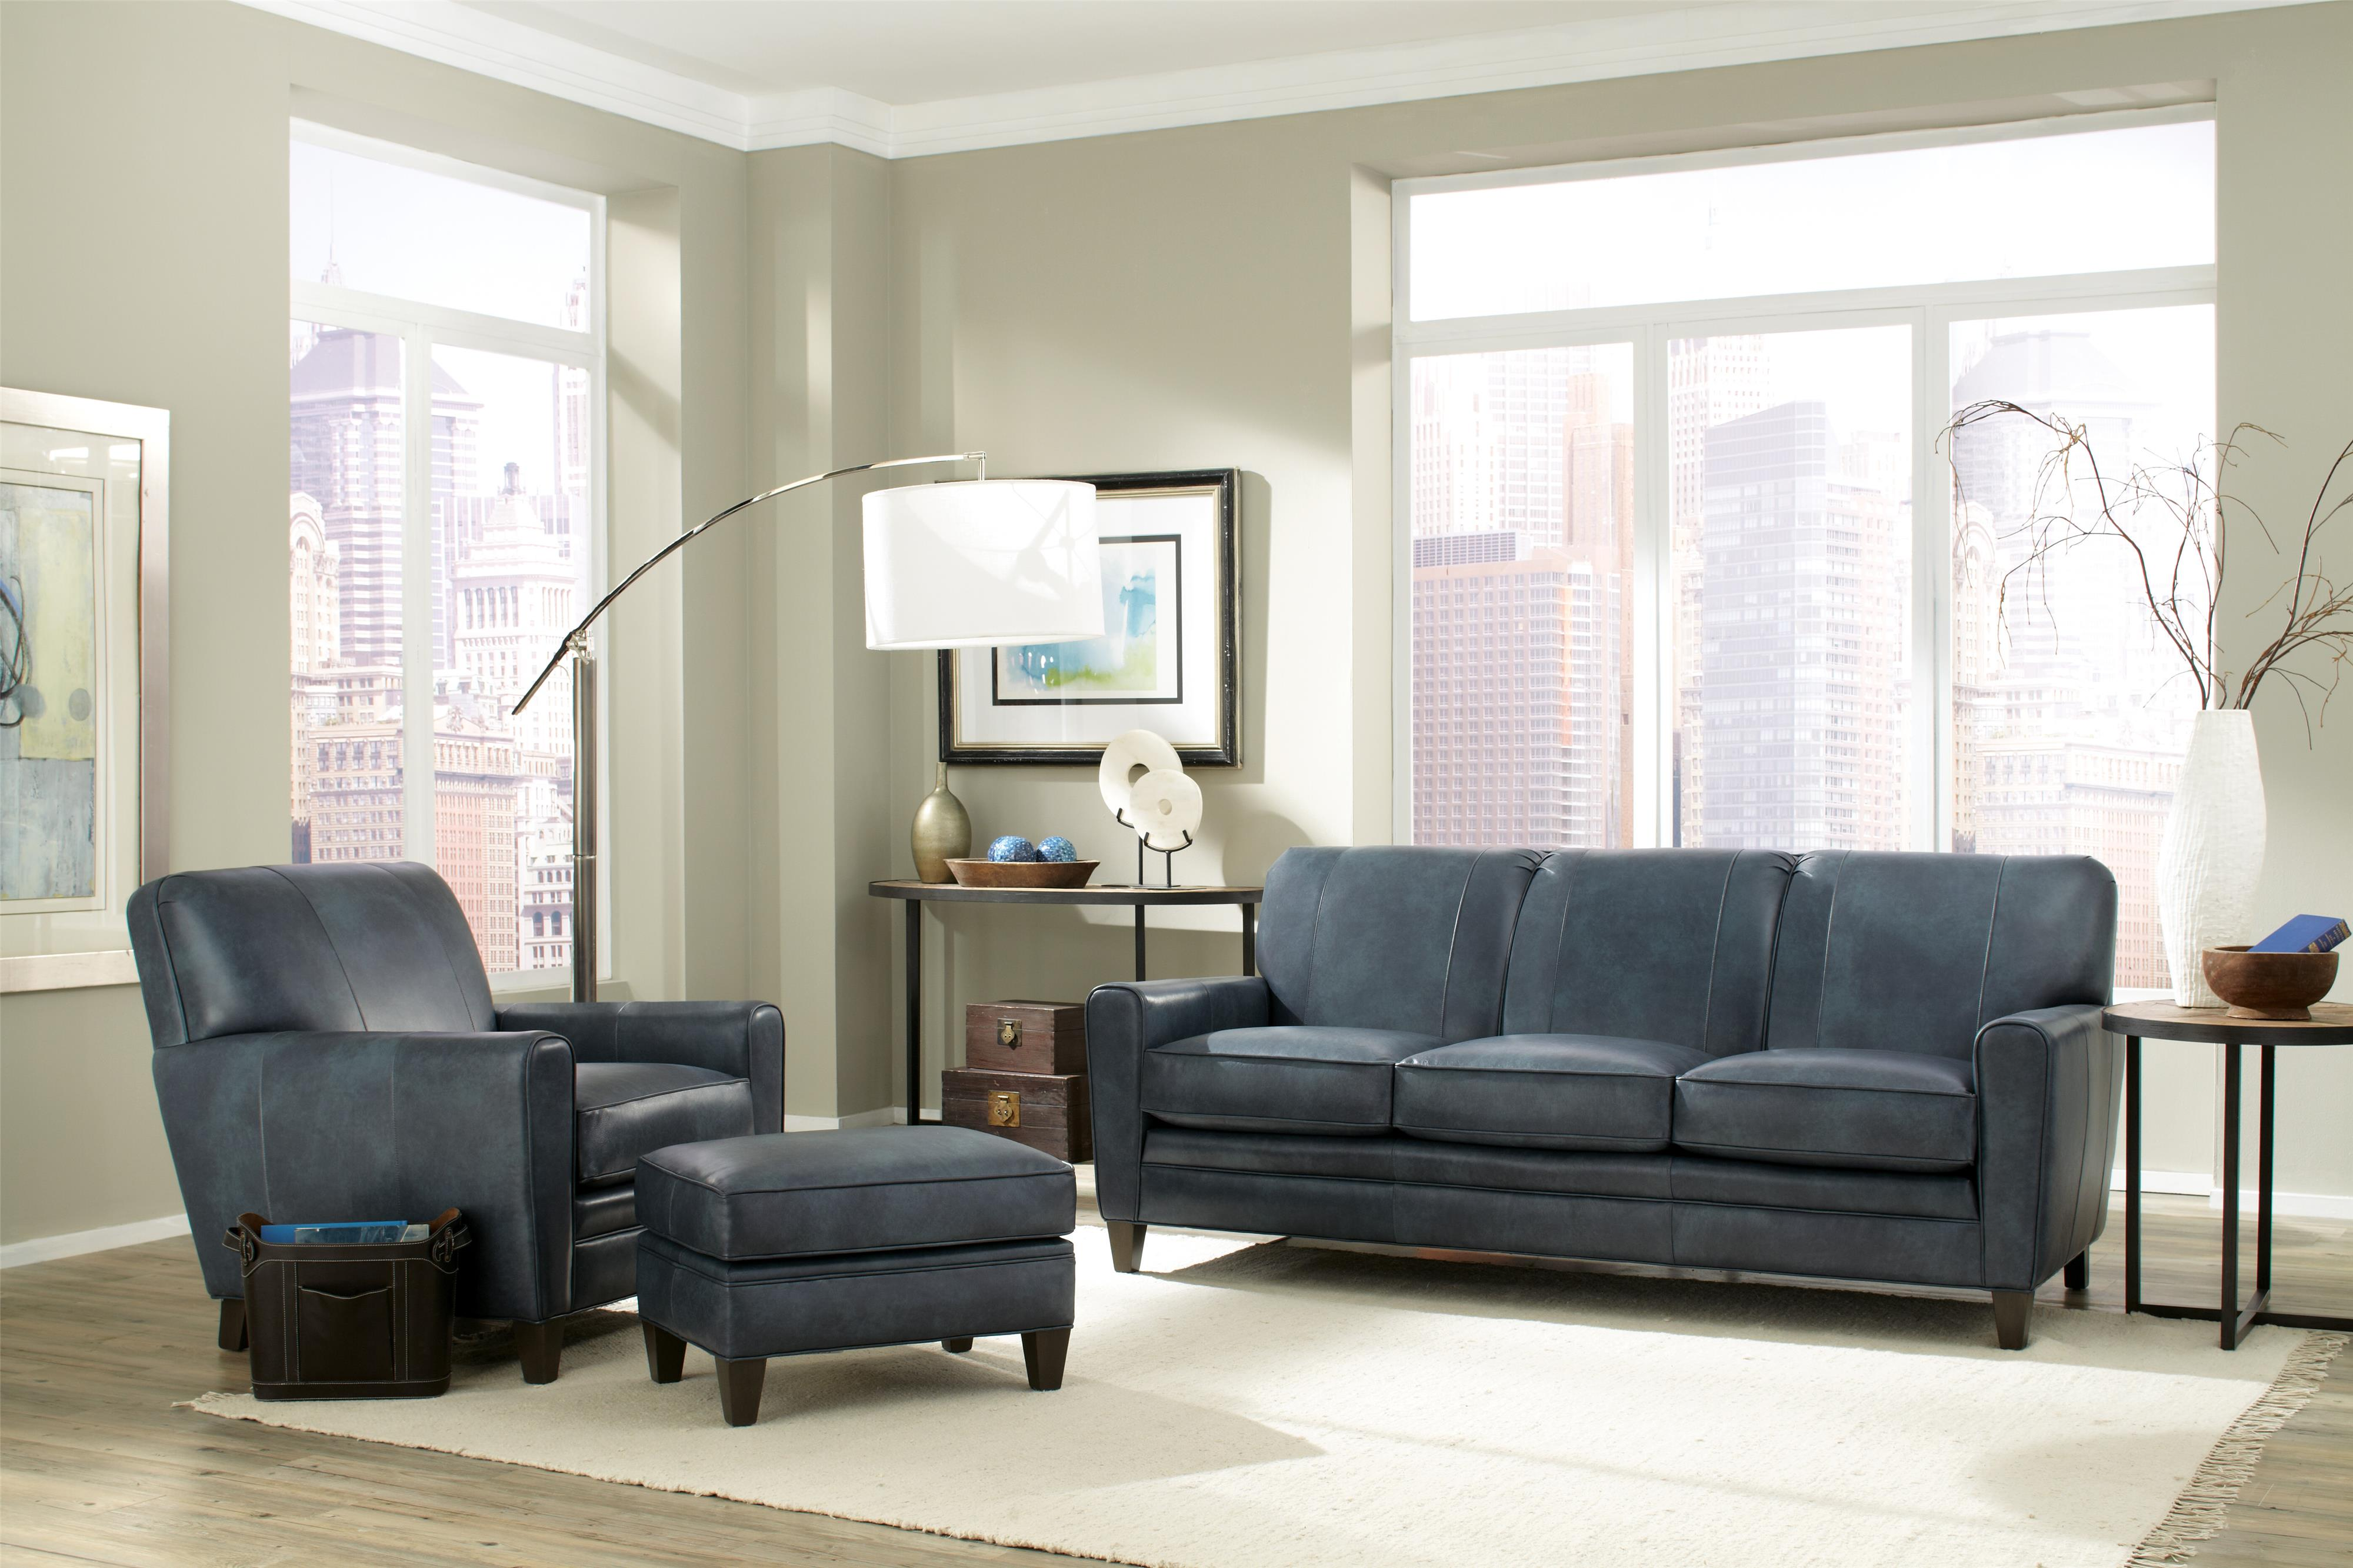 Smith Brothers 225 Leather Stationary Living Room Group Dunk Bright Furniture Stationary